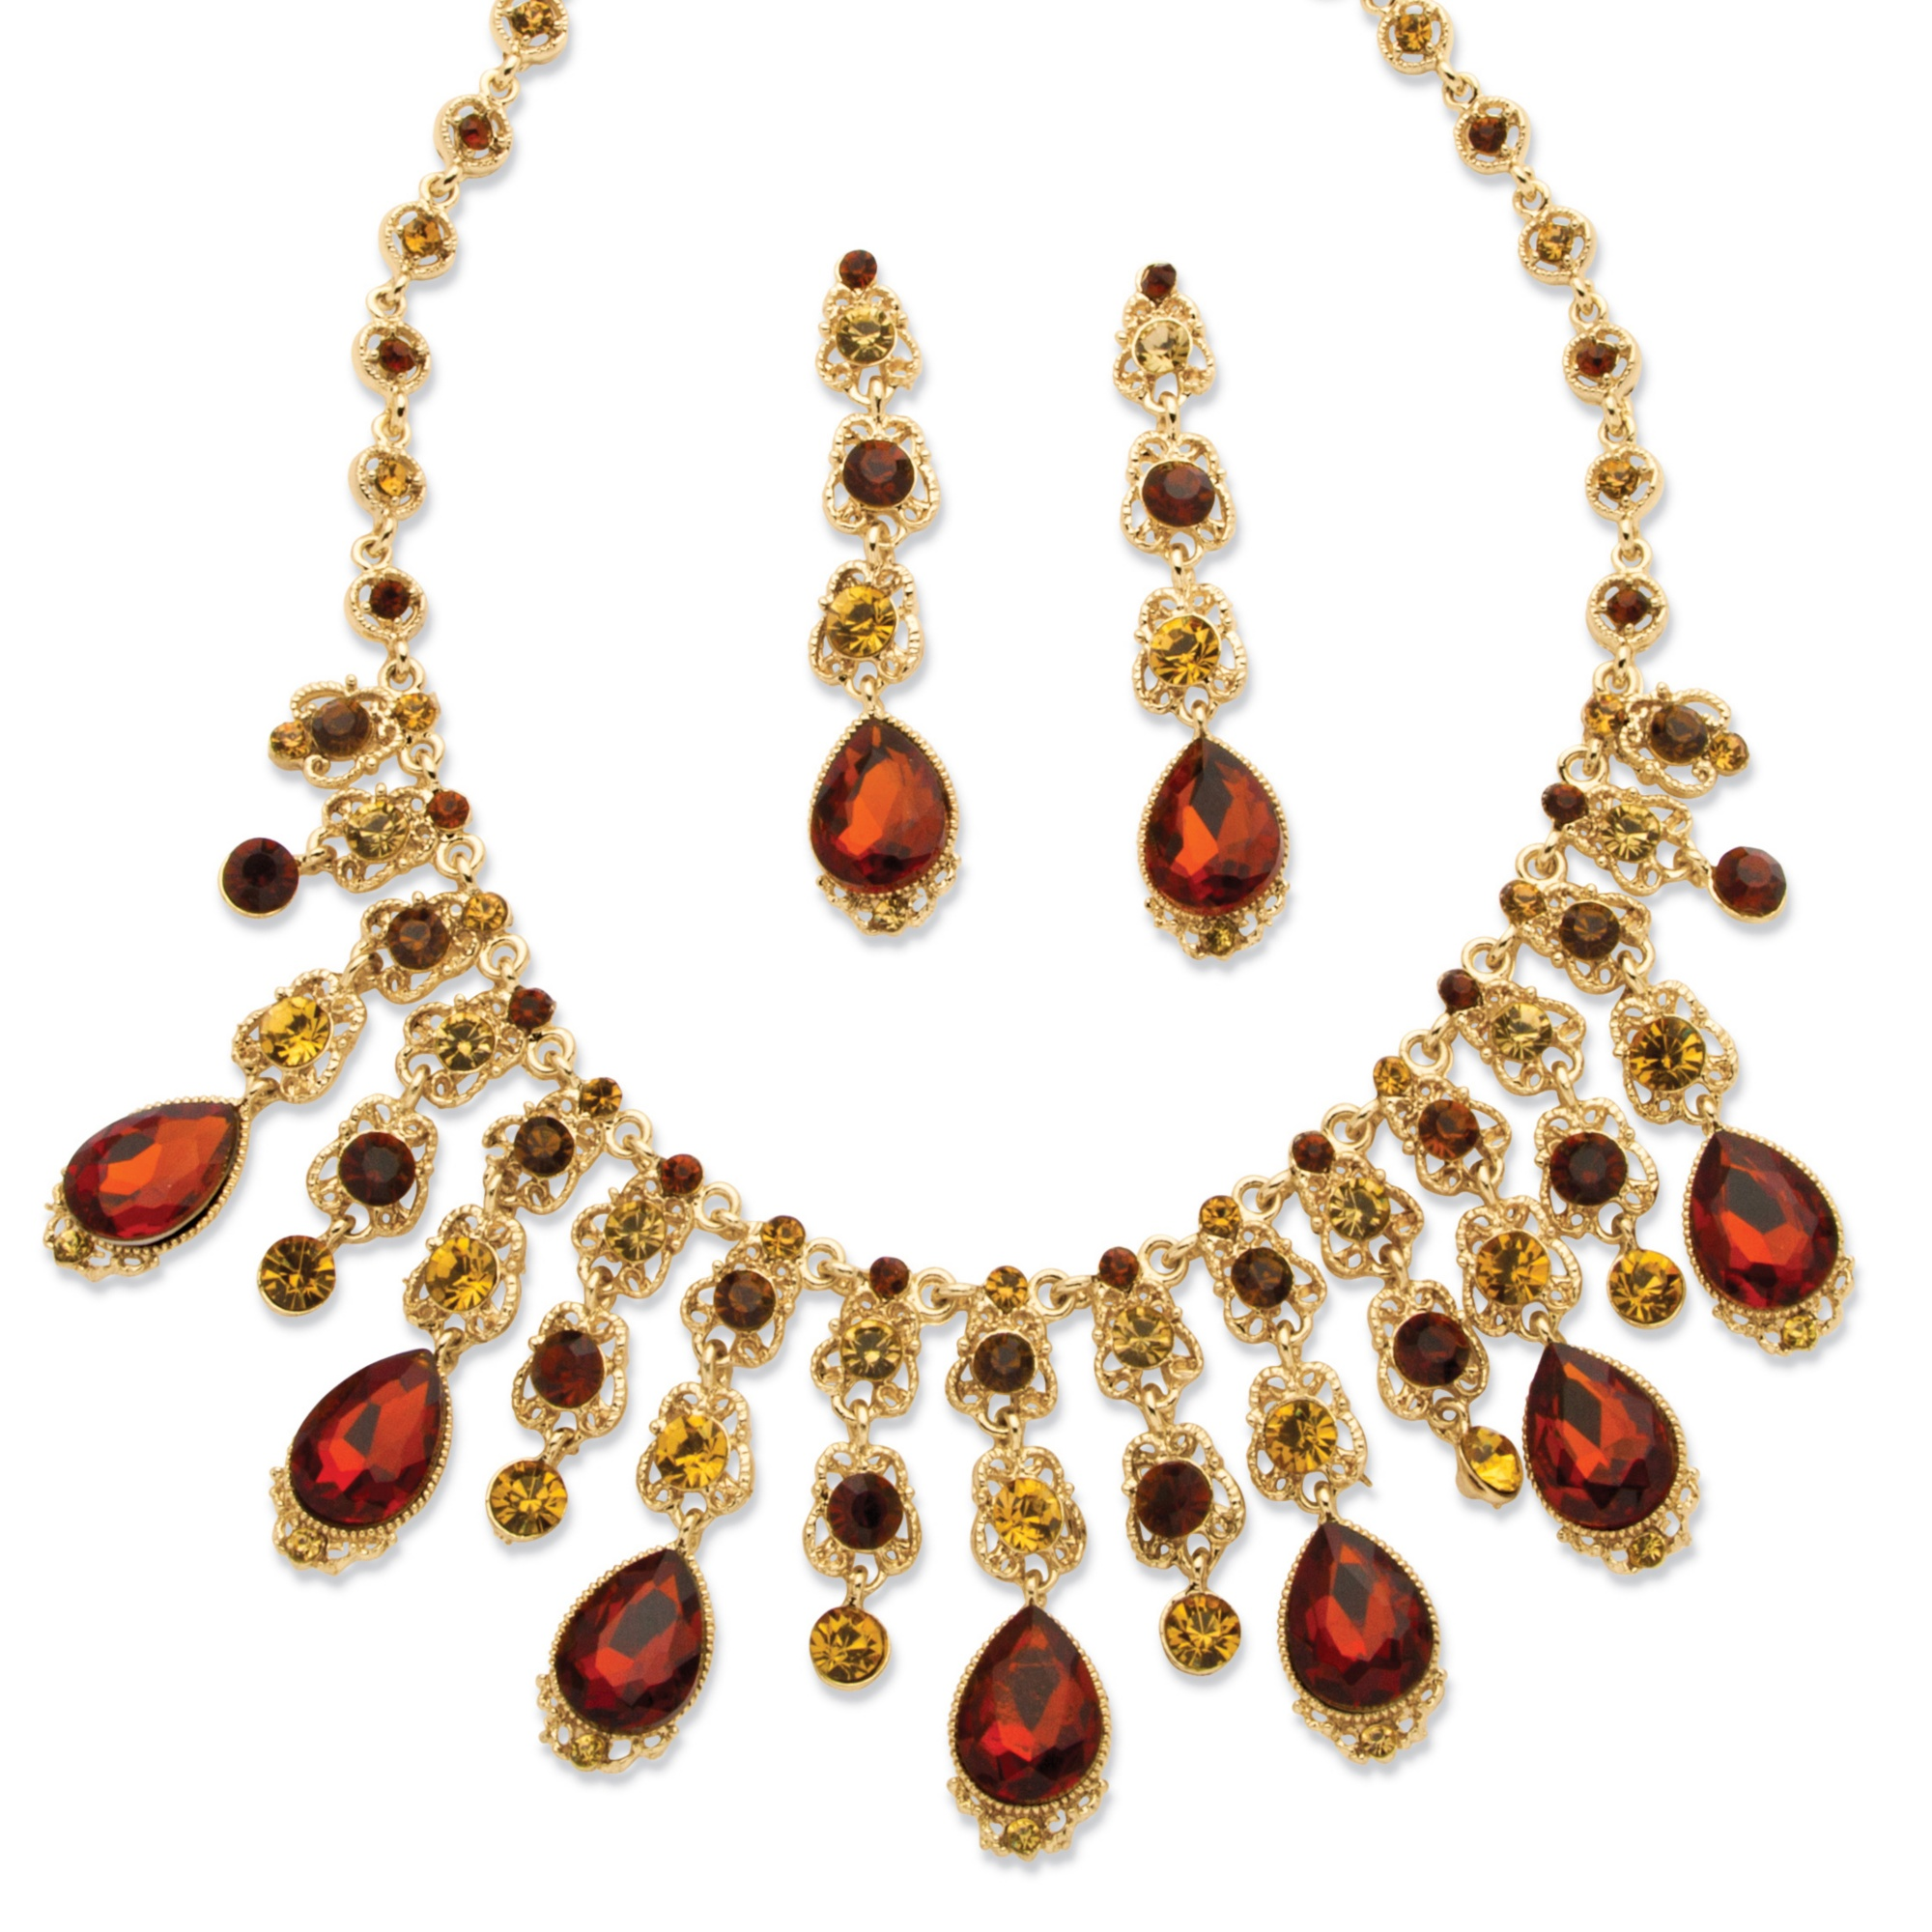 Smoky Crystal Vintage-Style Two-Piece Necklace and Earrings Set in Yellow Gold Tone